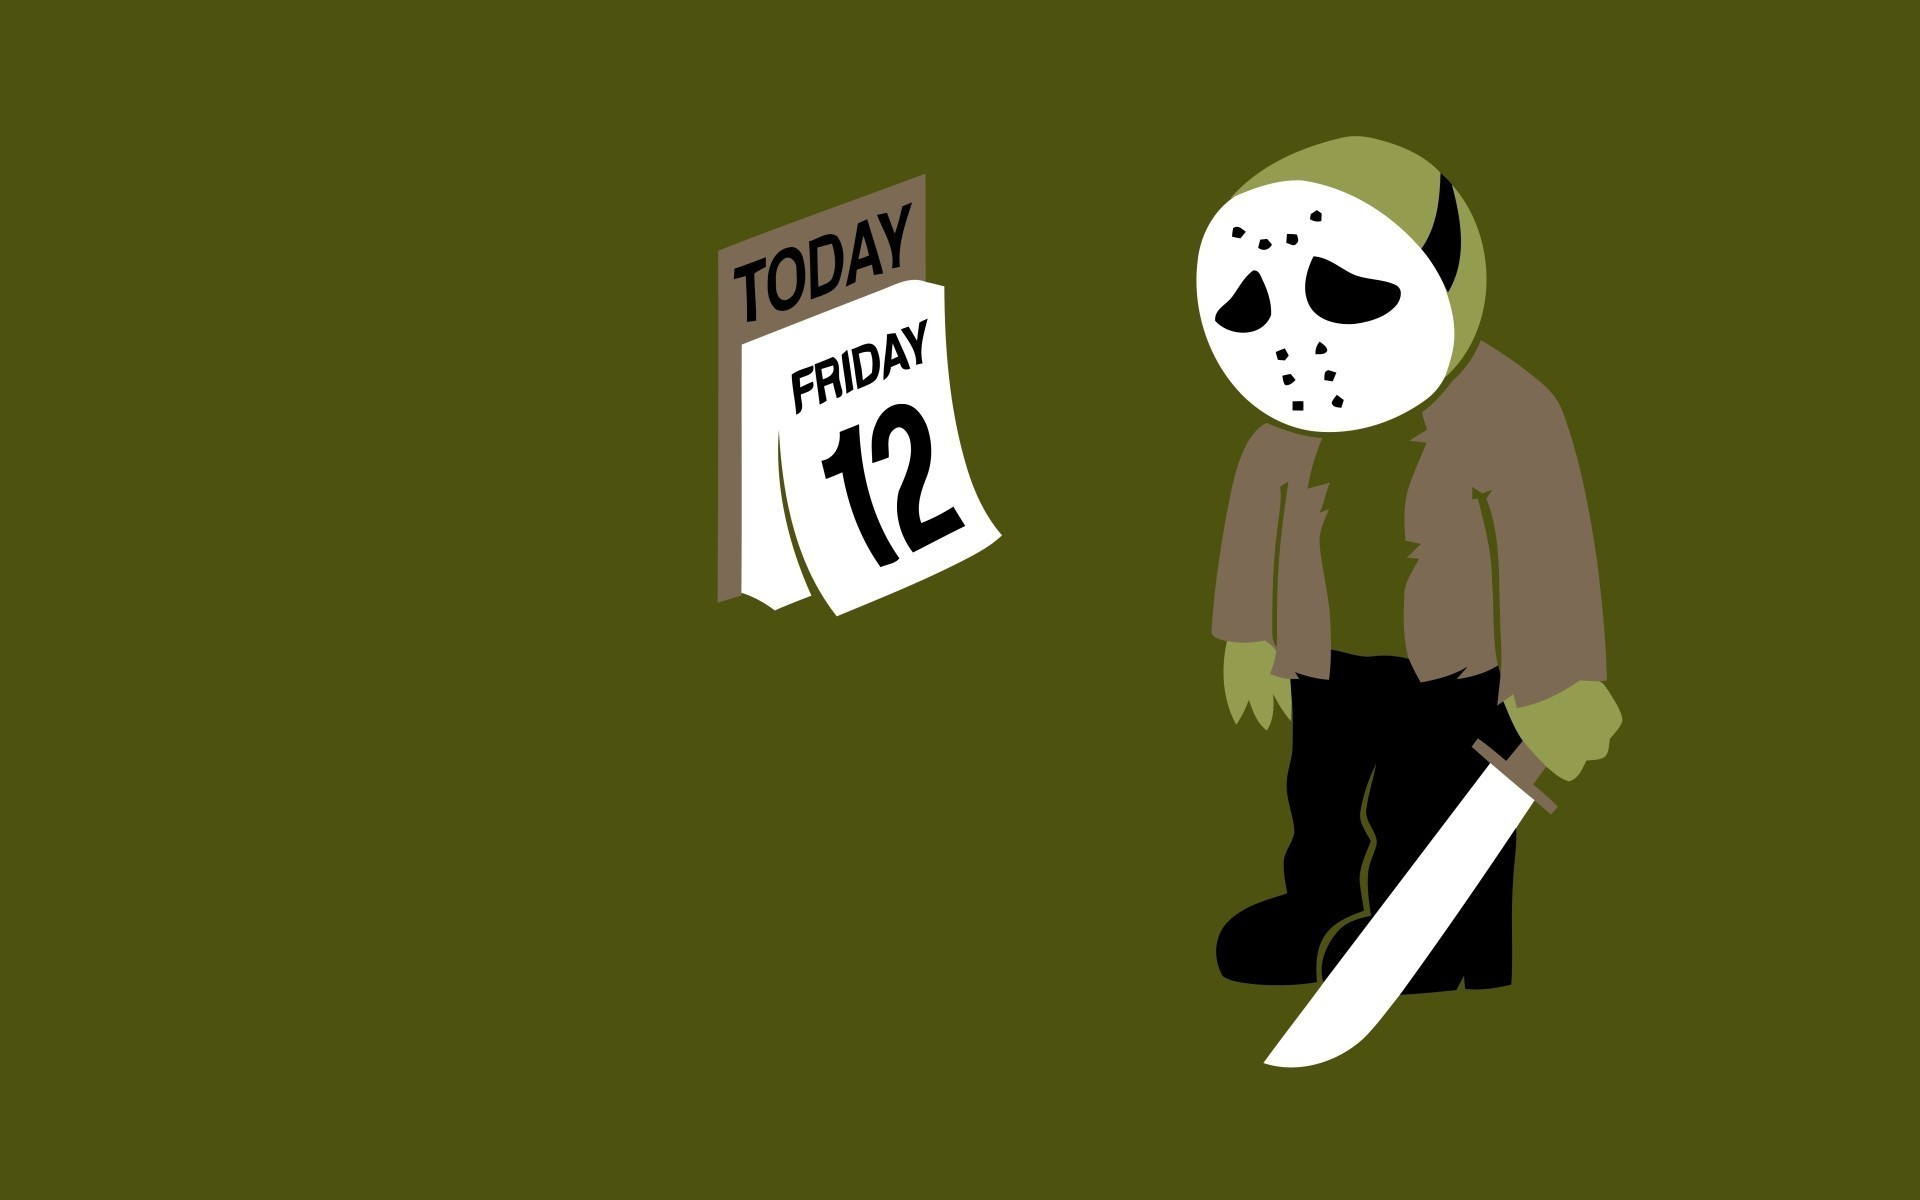 1920x1200 Friday the 13th jason voorhees funny wallpaper